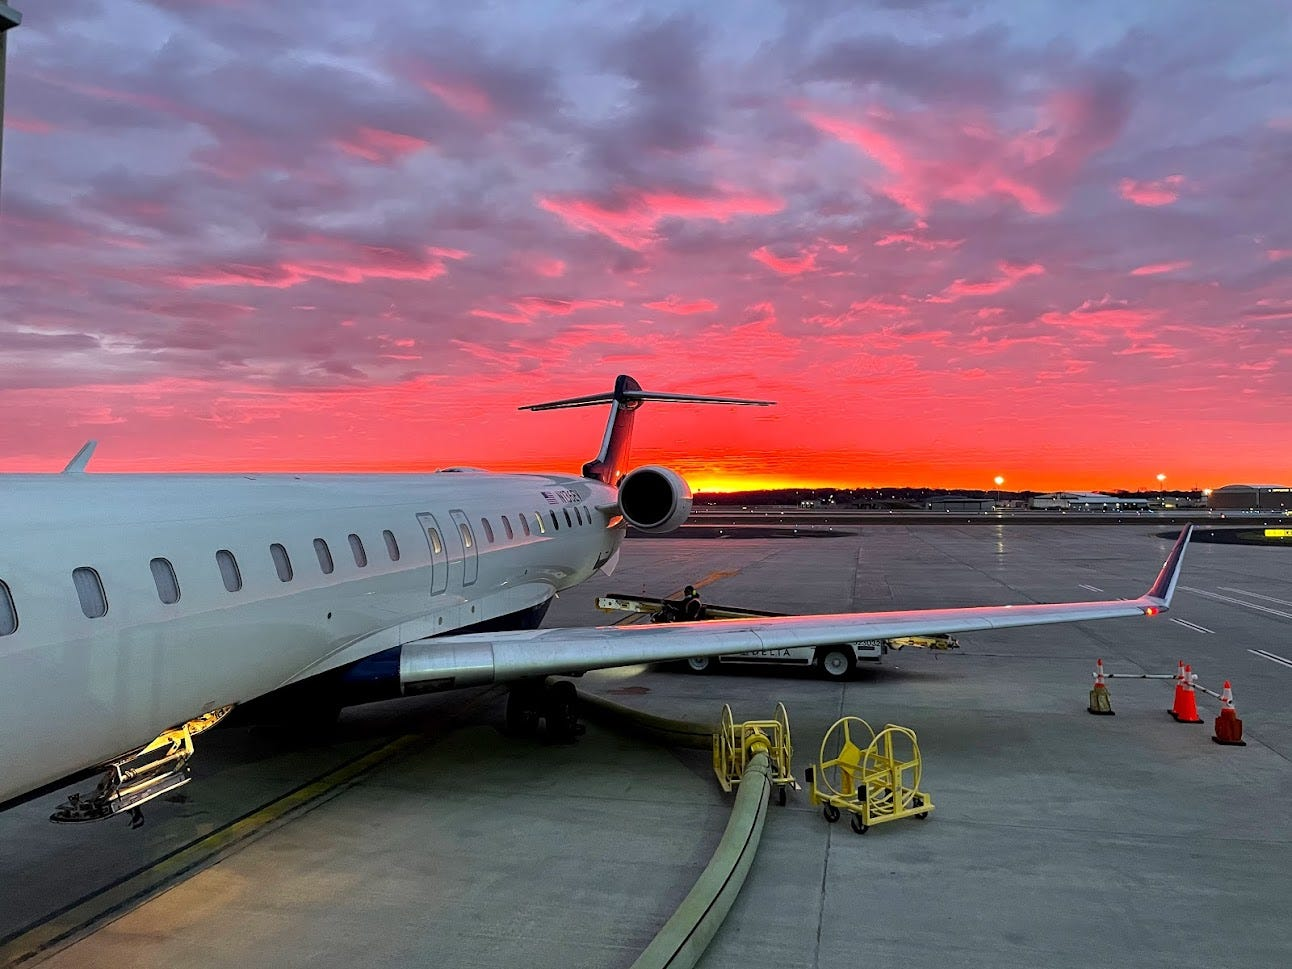 Sunrise at the Madison WI. airport.